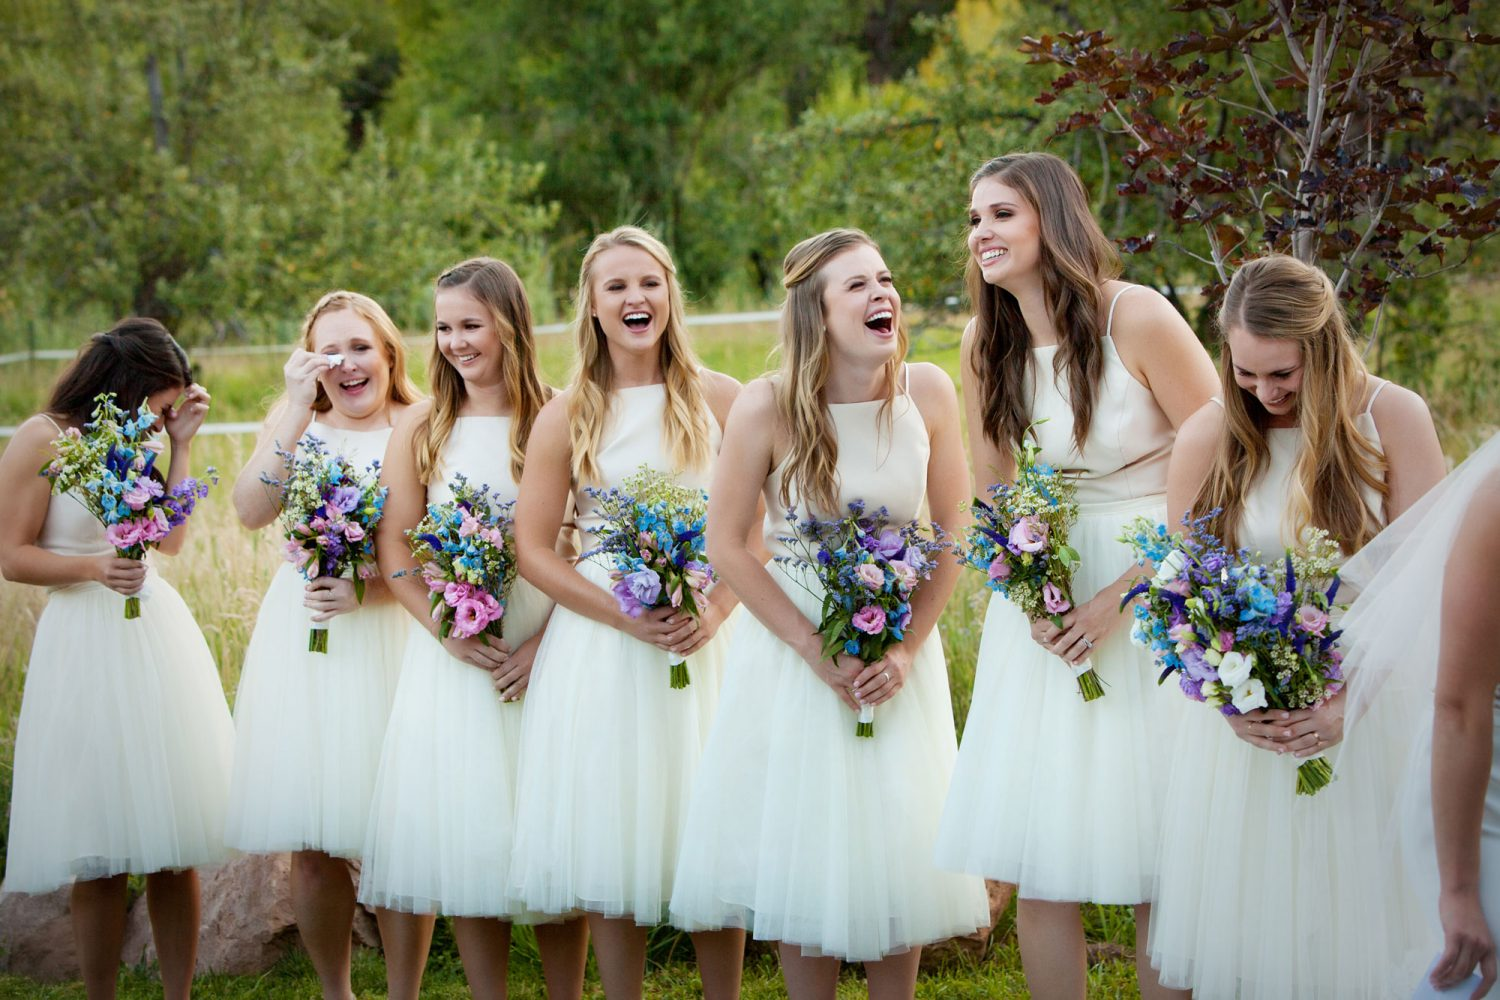 Bridesmaids from a Backyard wedding in Durango, Colorado